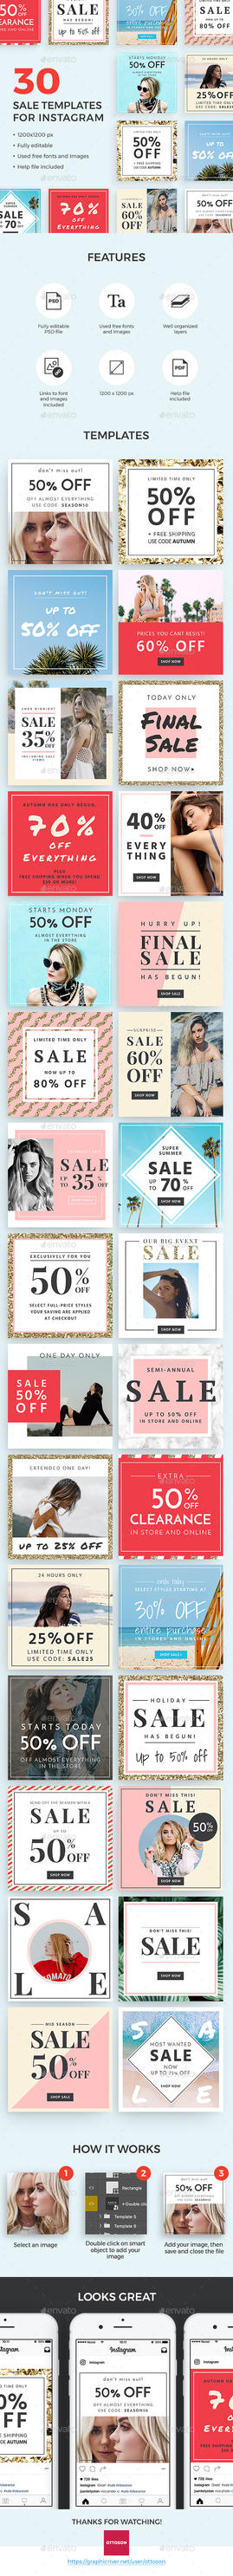 30 Sale Templates For Instagram by ottoson